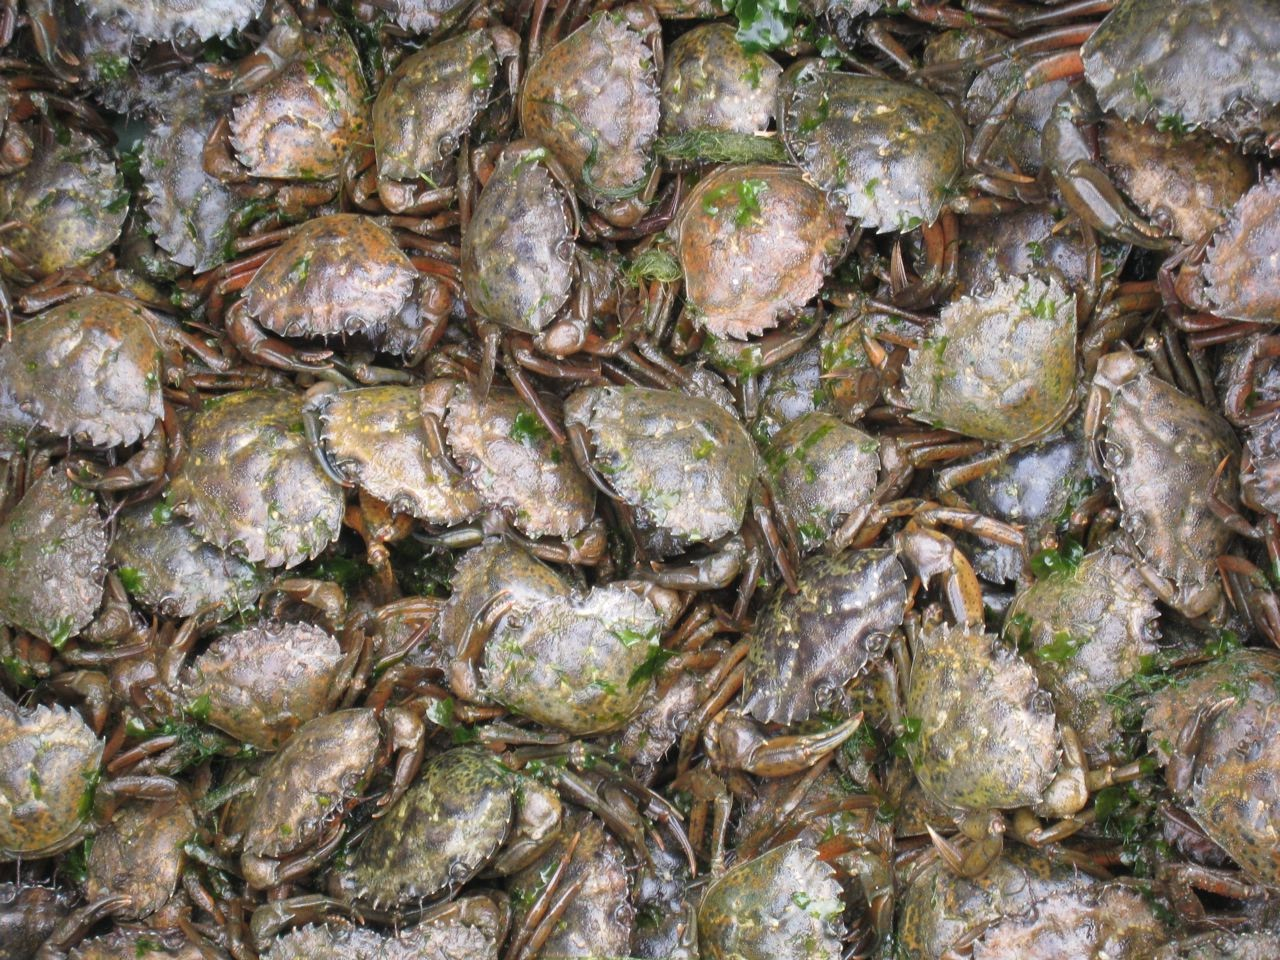 cluster of green crabs